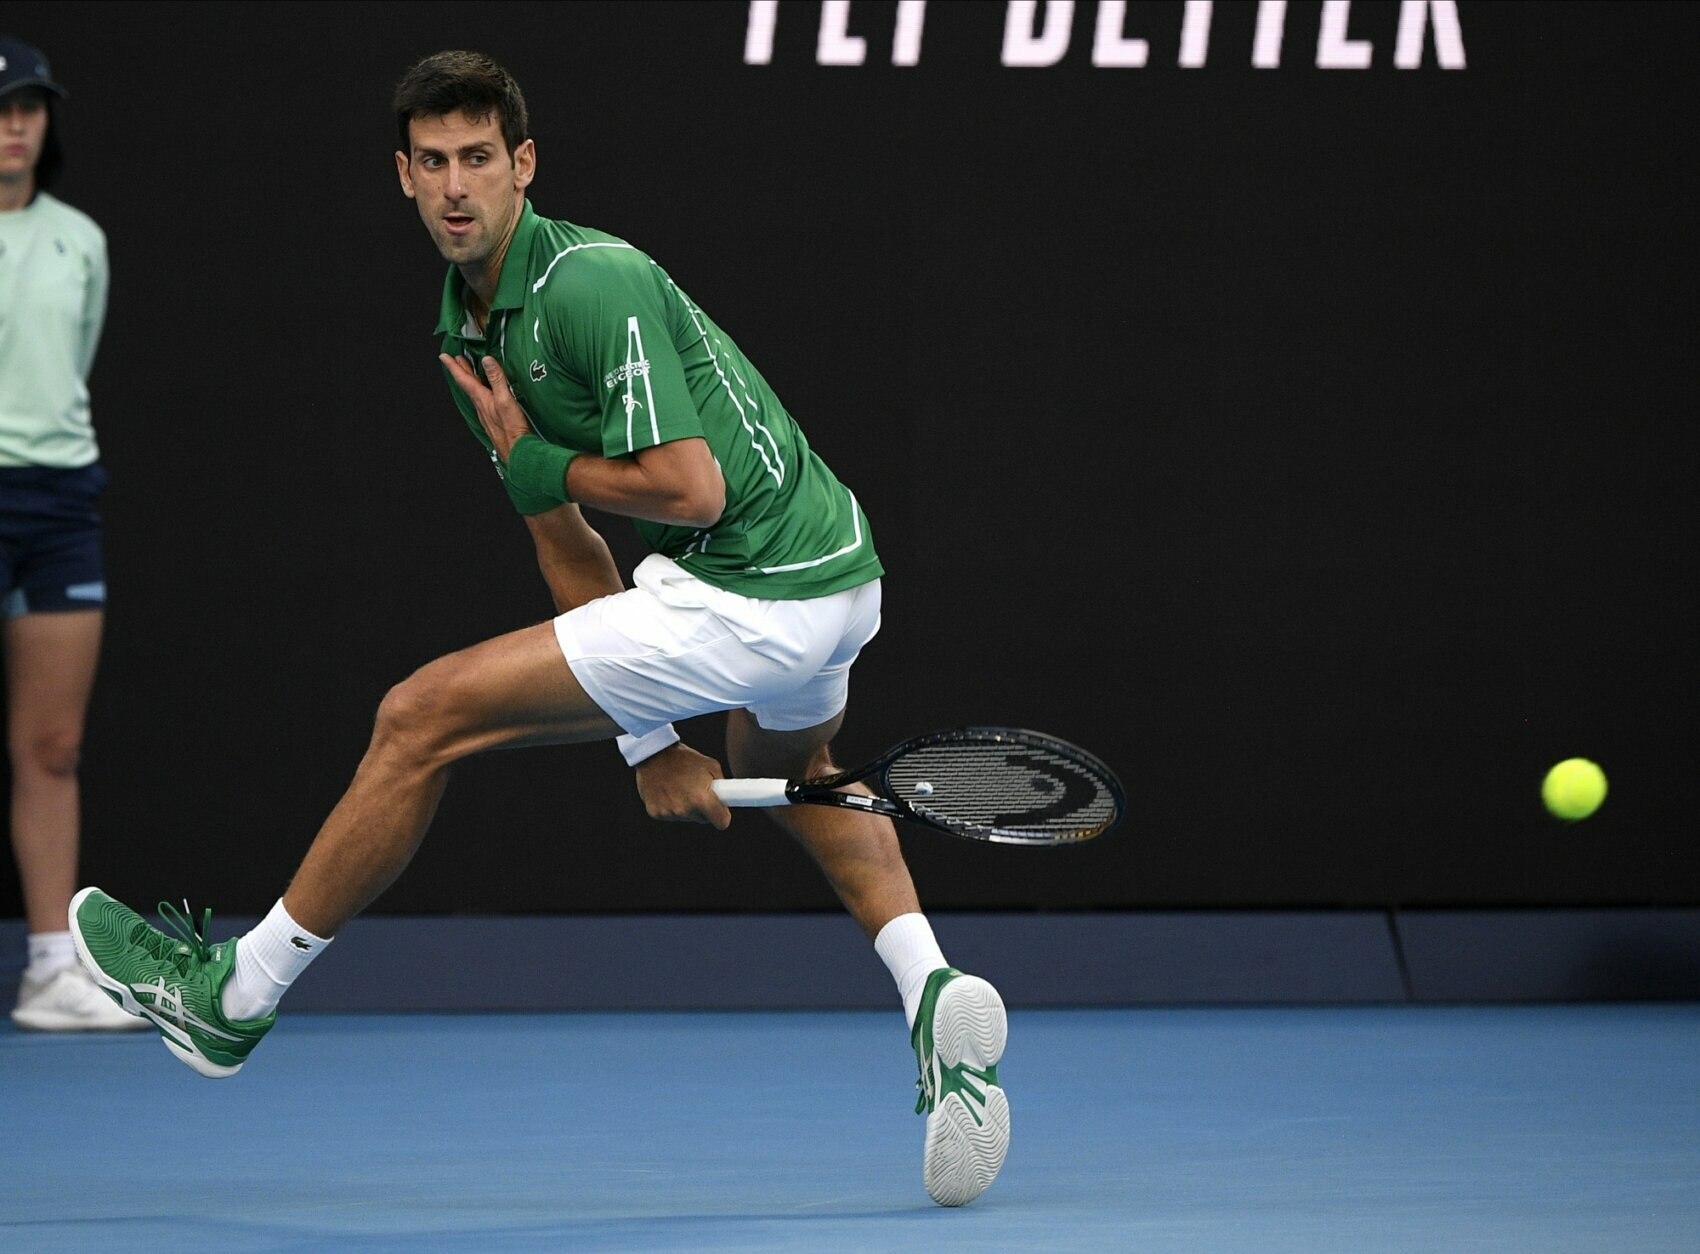 Djokovic Comes Back For 8th Australian Open Title 17th Slam Wtop